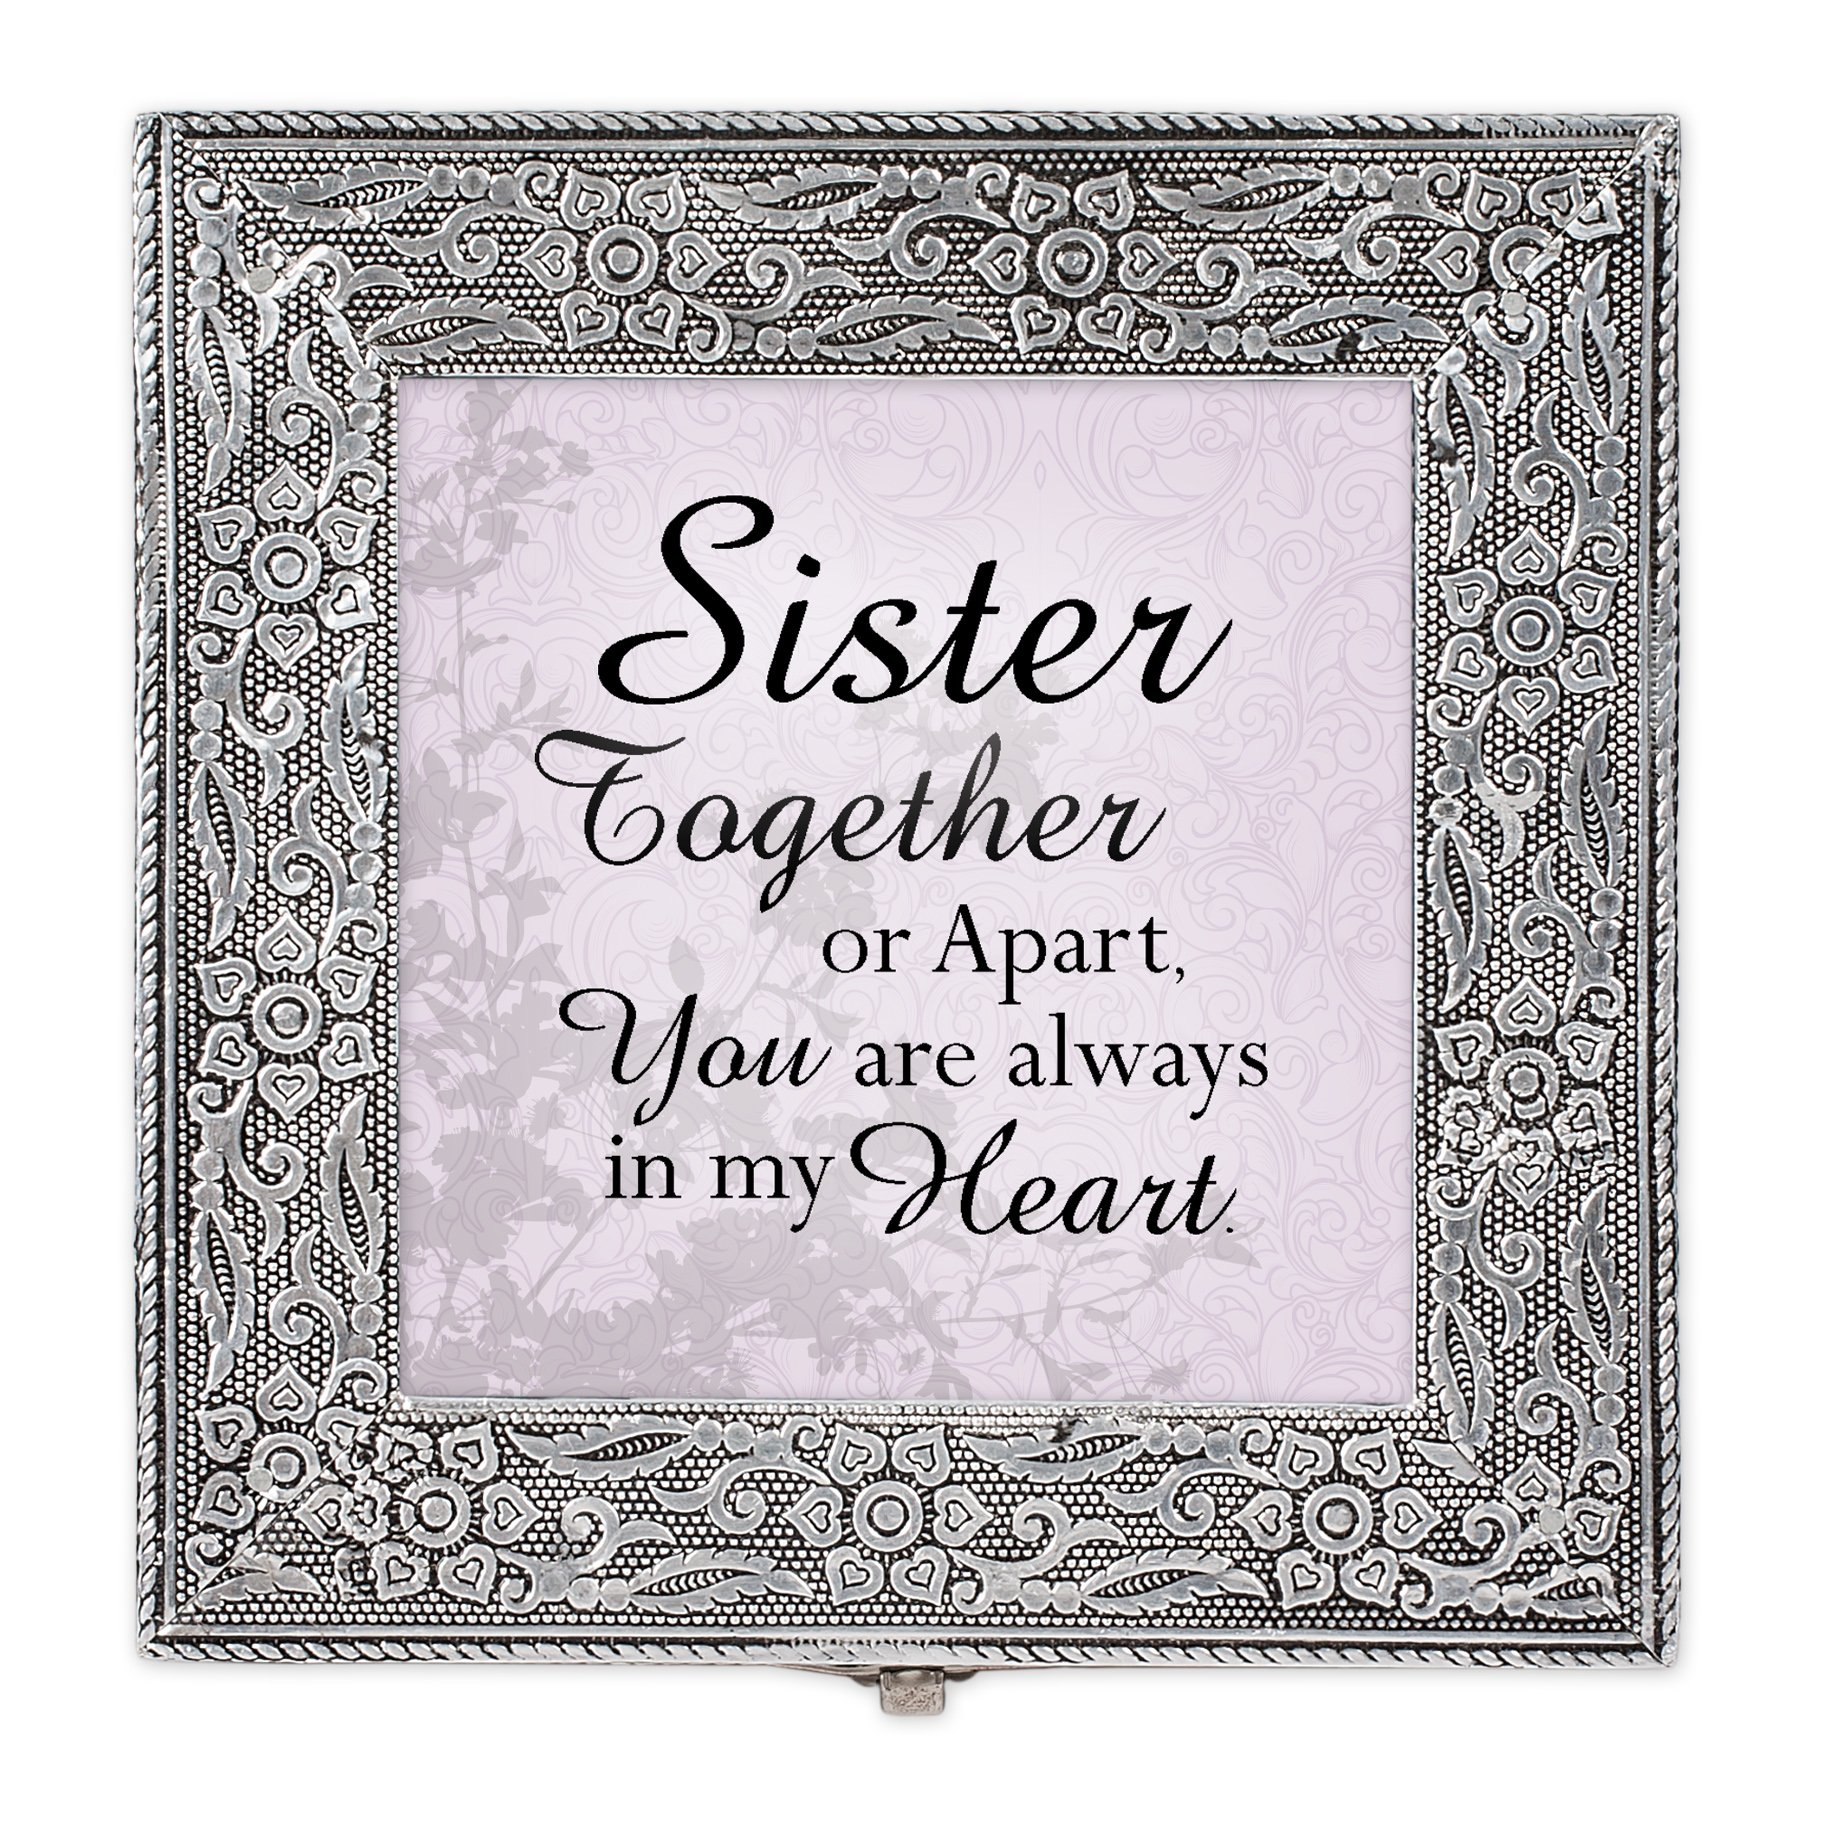 Cottage Garden Sister Together Always in Heart Silver Stamped Metal Jewelry Music Box Plays Tune That's What Friends are for by Cottage Garden (Image #3)